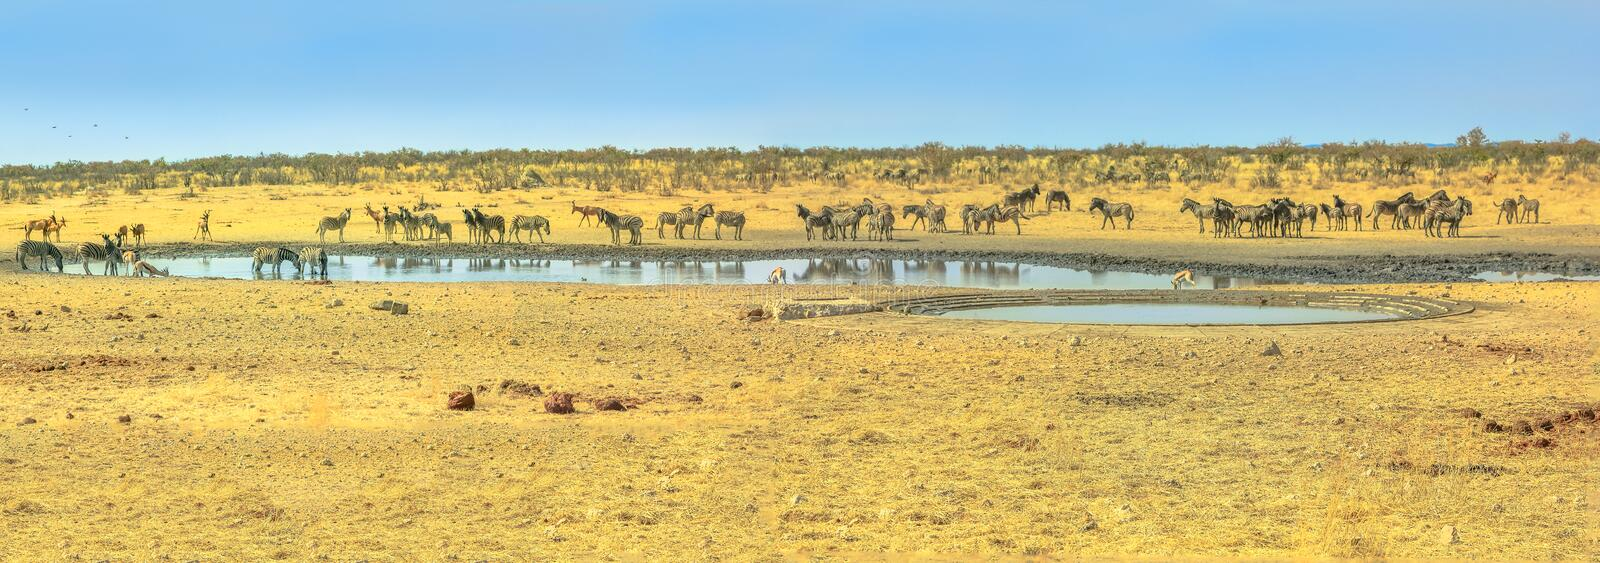 Etosha waterhole animals stock photos